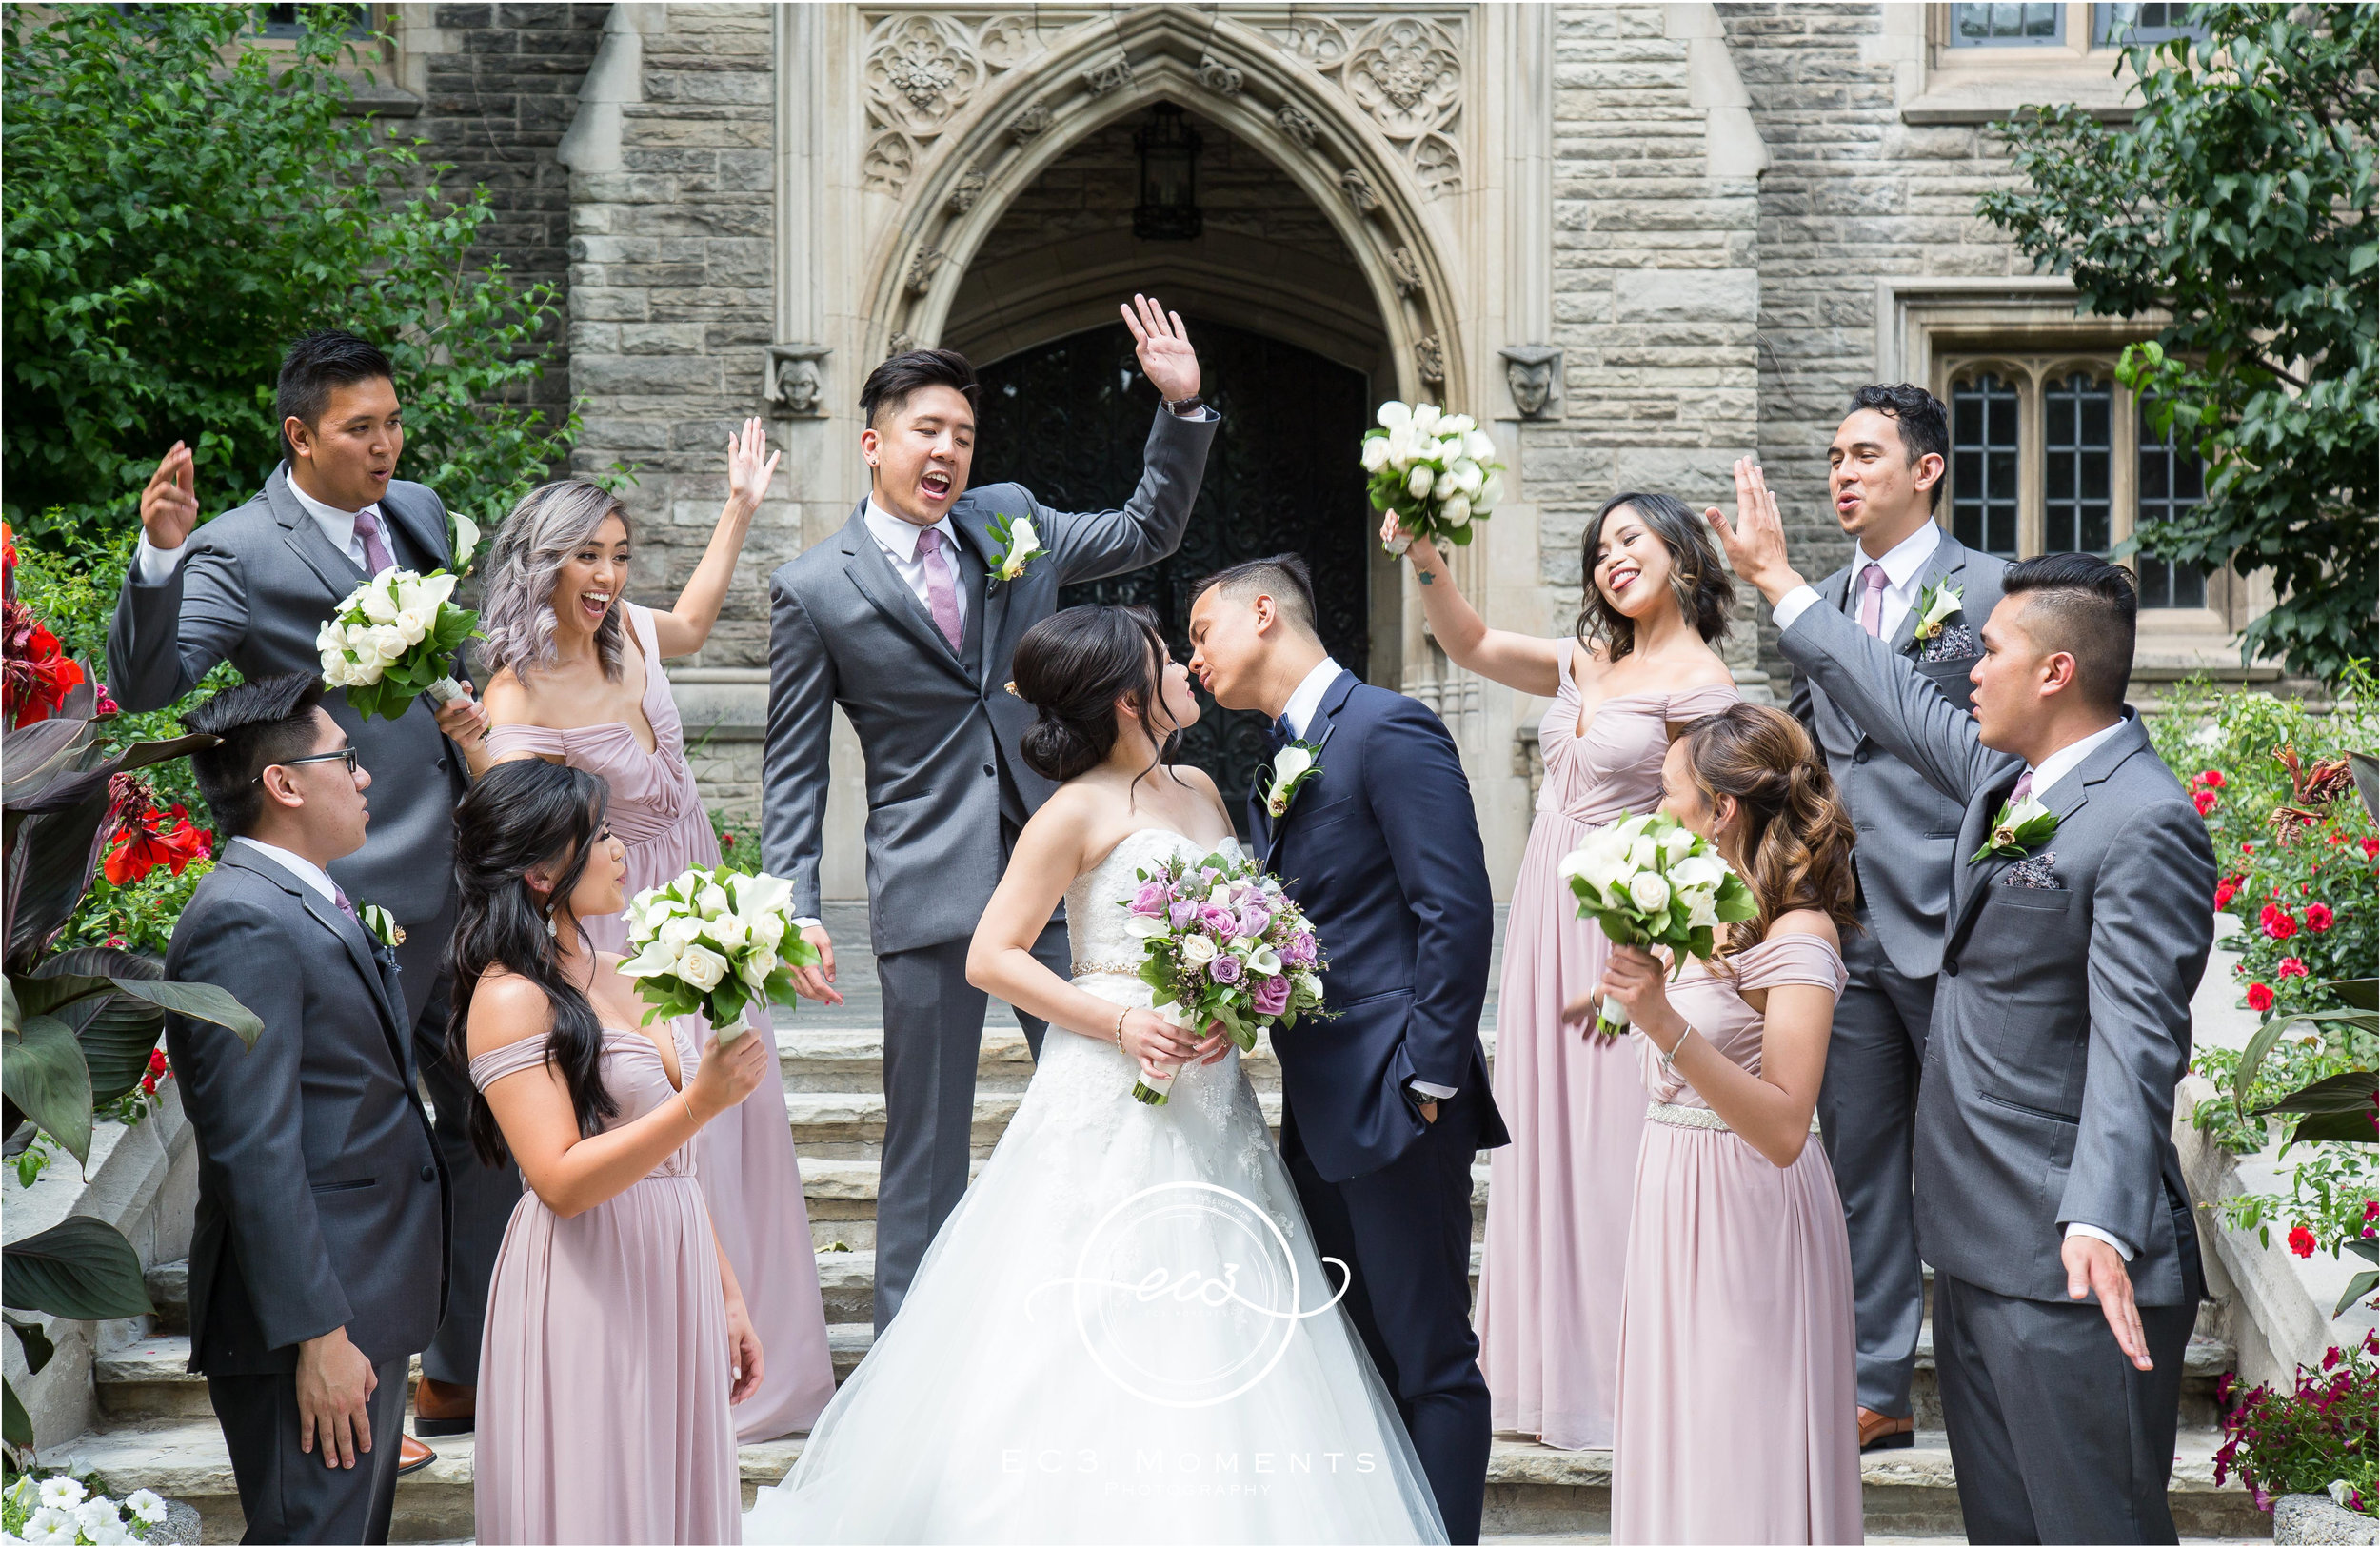 Rochelle & Anton's McMaster University Wedding 31.jpg